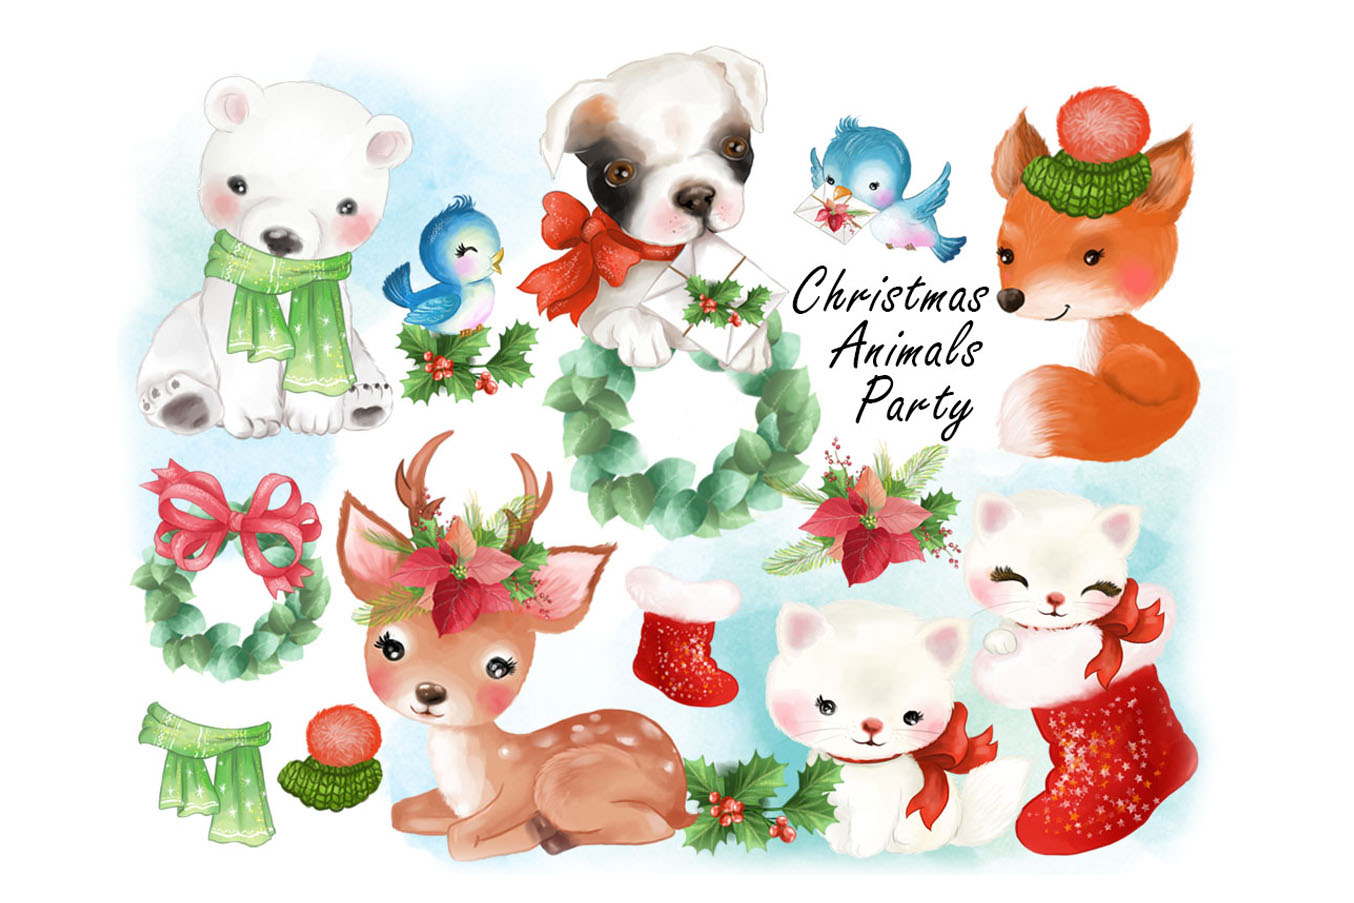 Christmas Animals Party clipat.